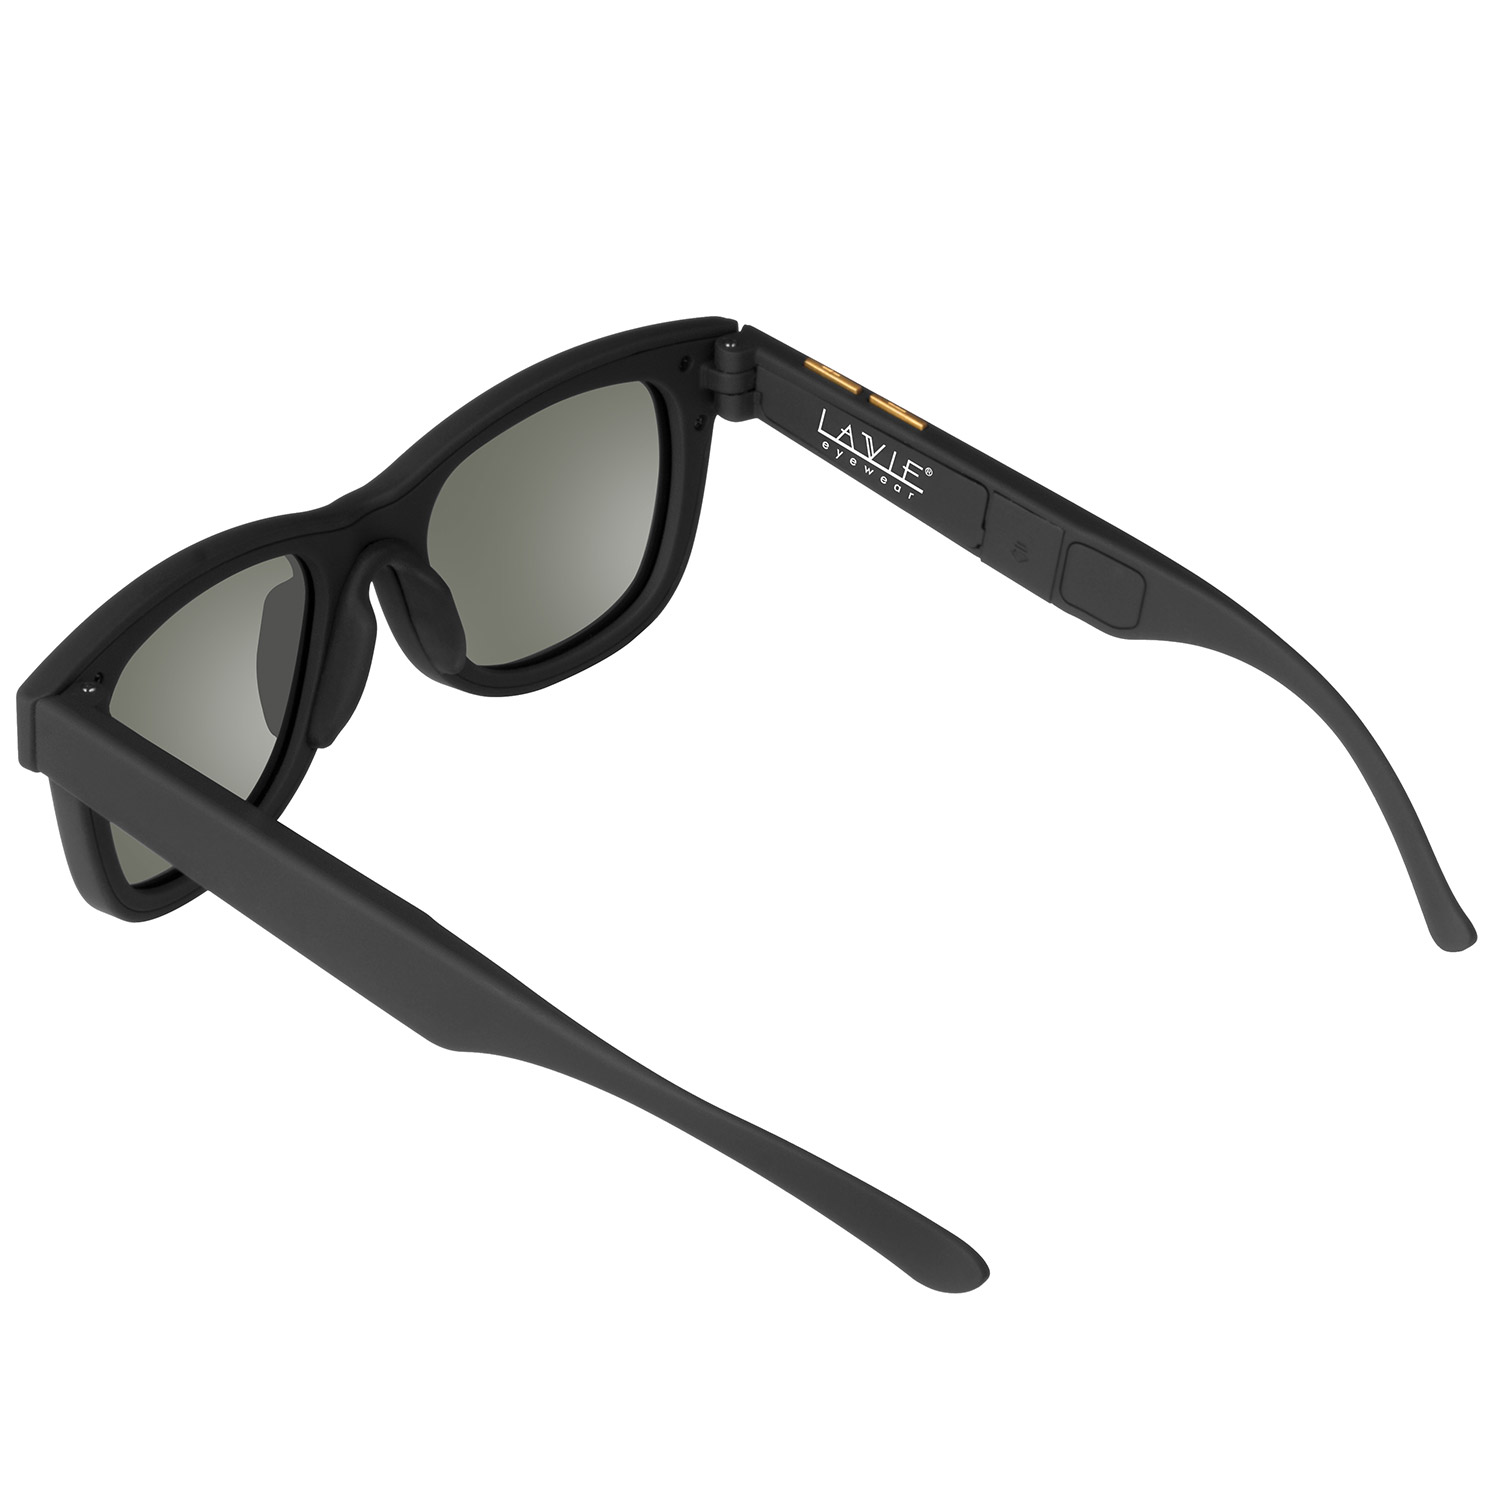 Smart Lens™ - Adjustable Tint - Electronic LCD Sunglasses